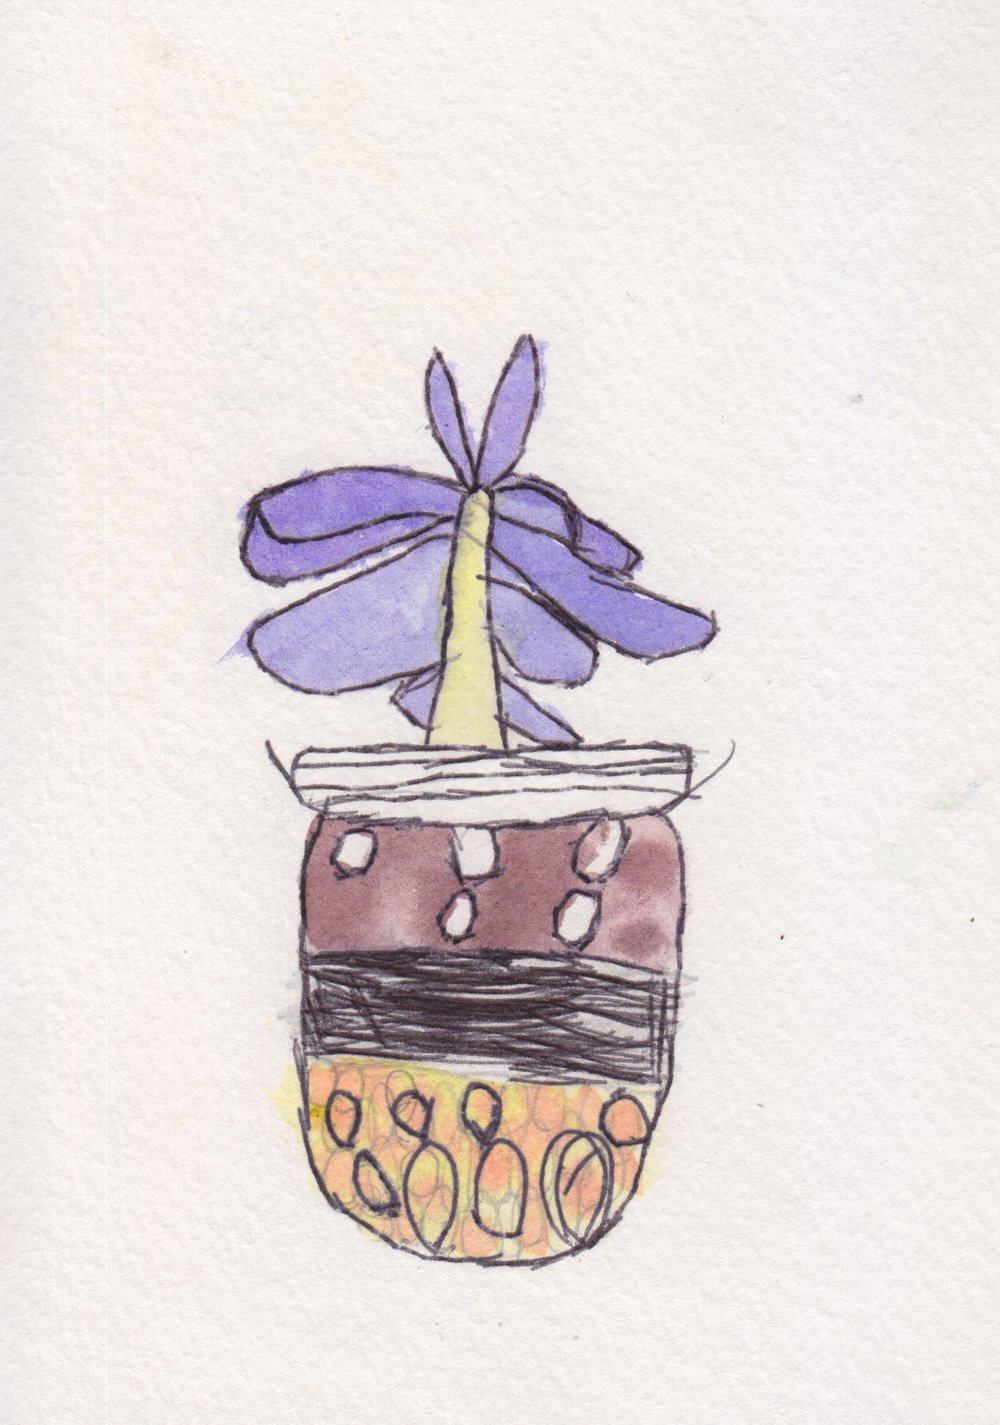 centro_watercolor terrarium_FelixPerez.jpeg